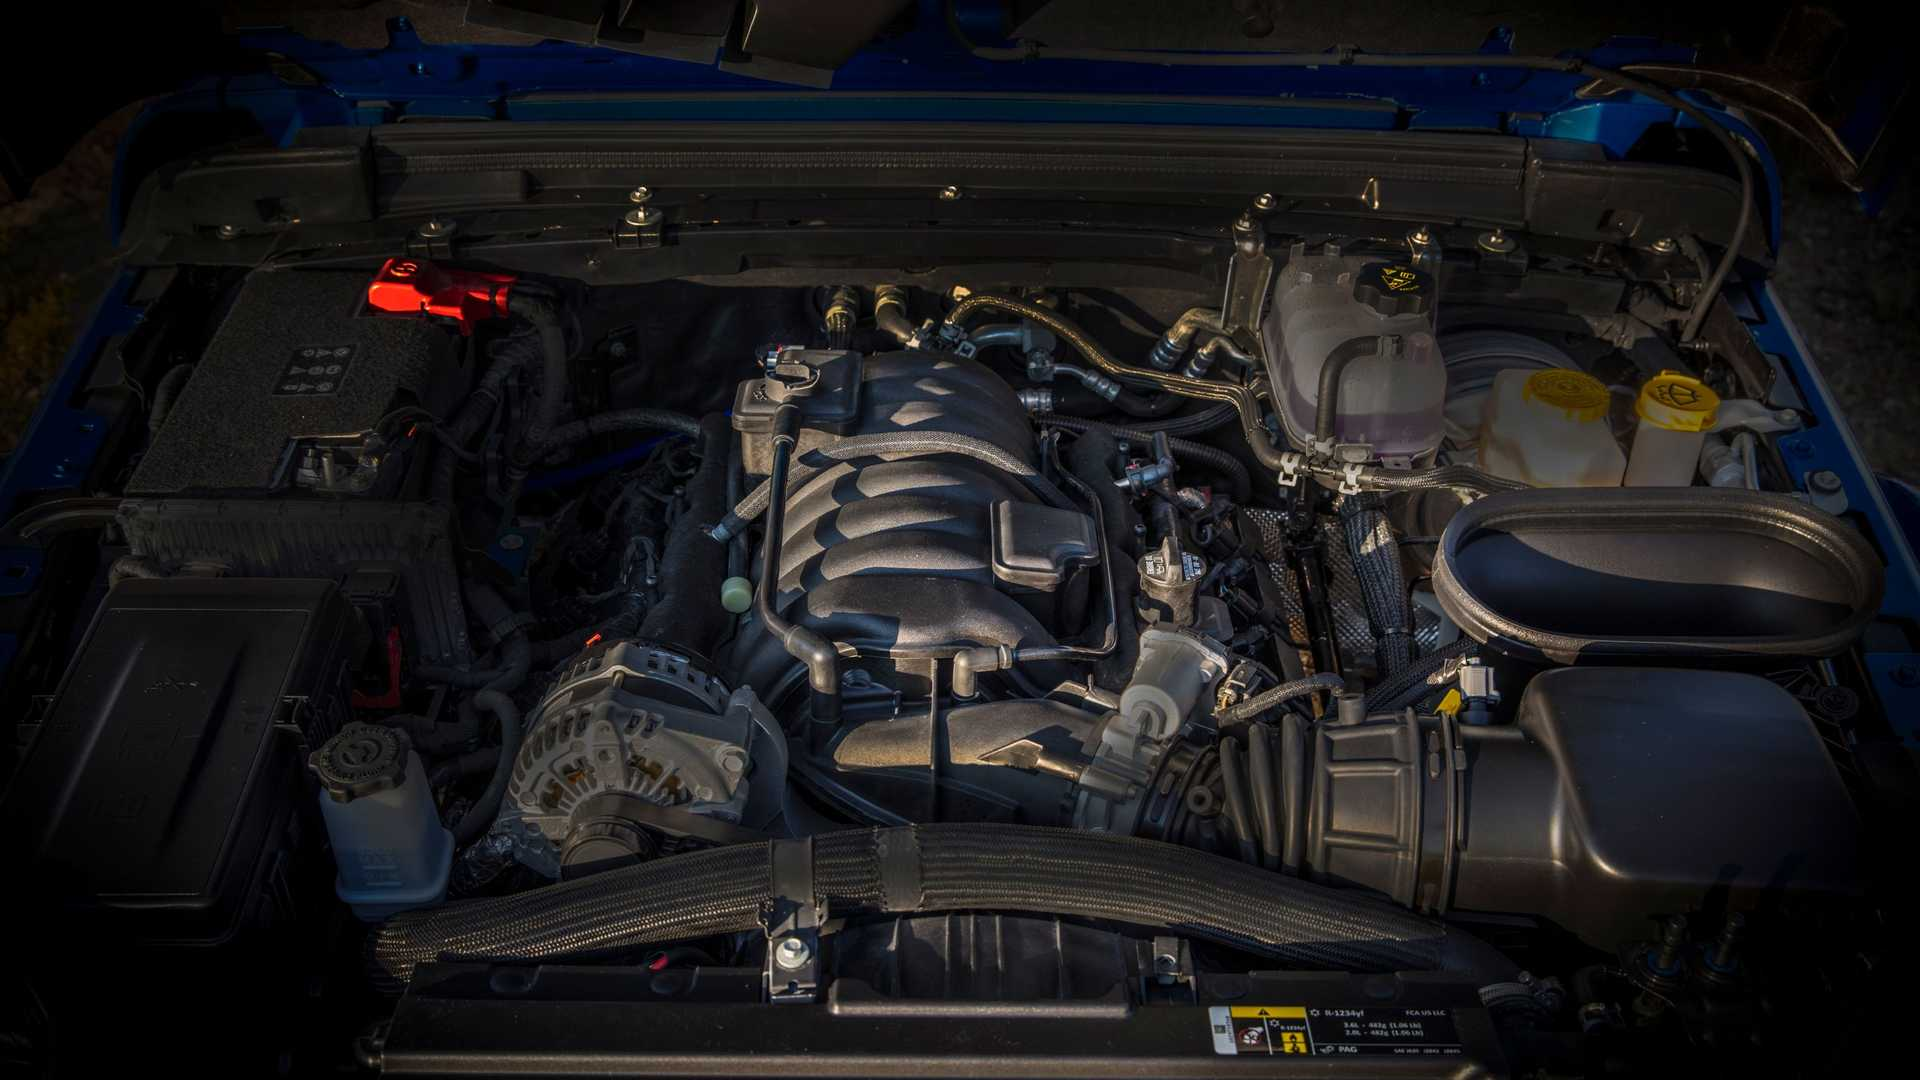 2021-jeep-wrangler-rubicon-392-engine